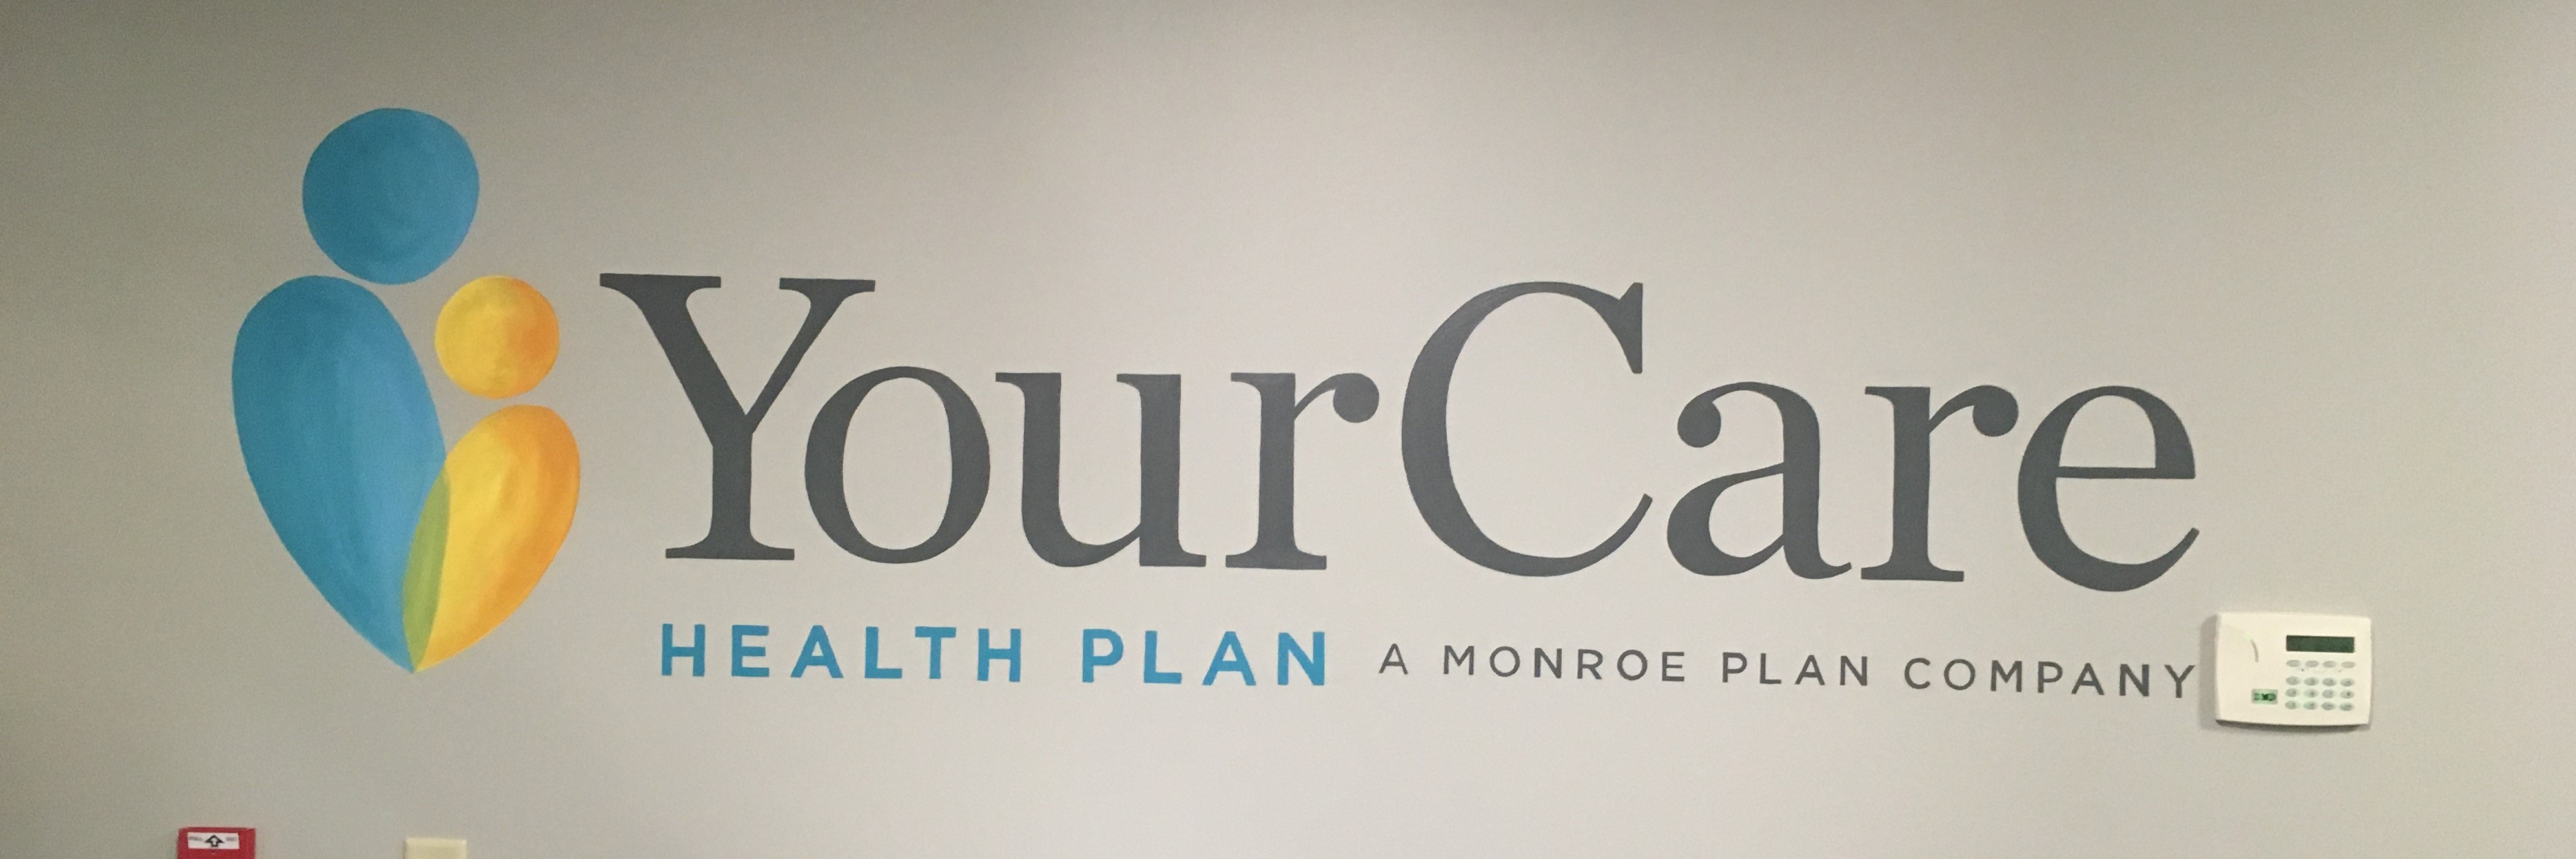 YourCare Office (2).jpg